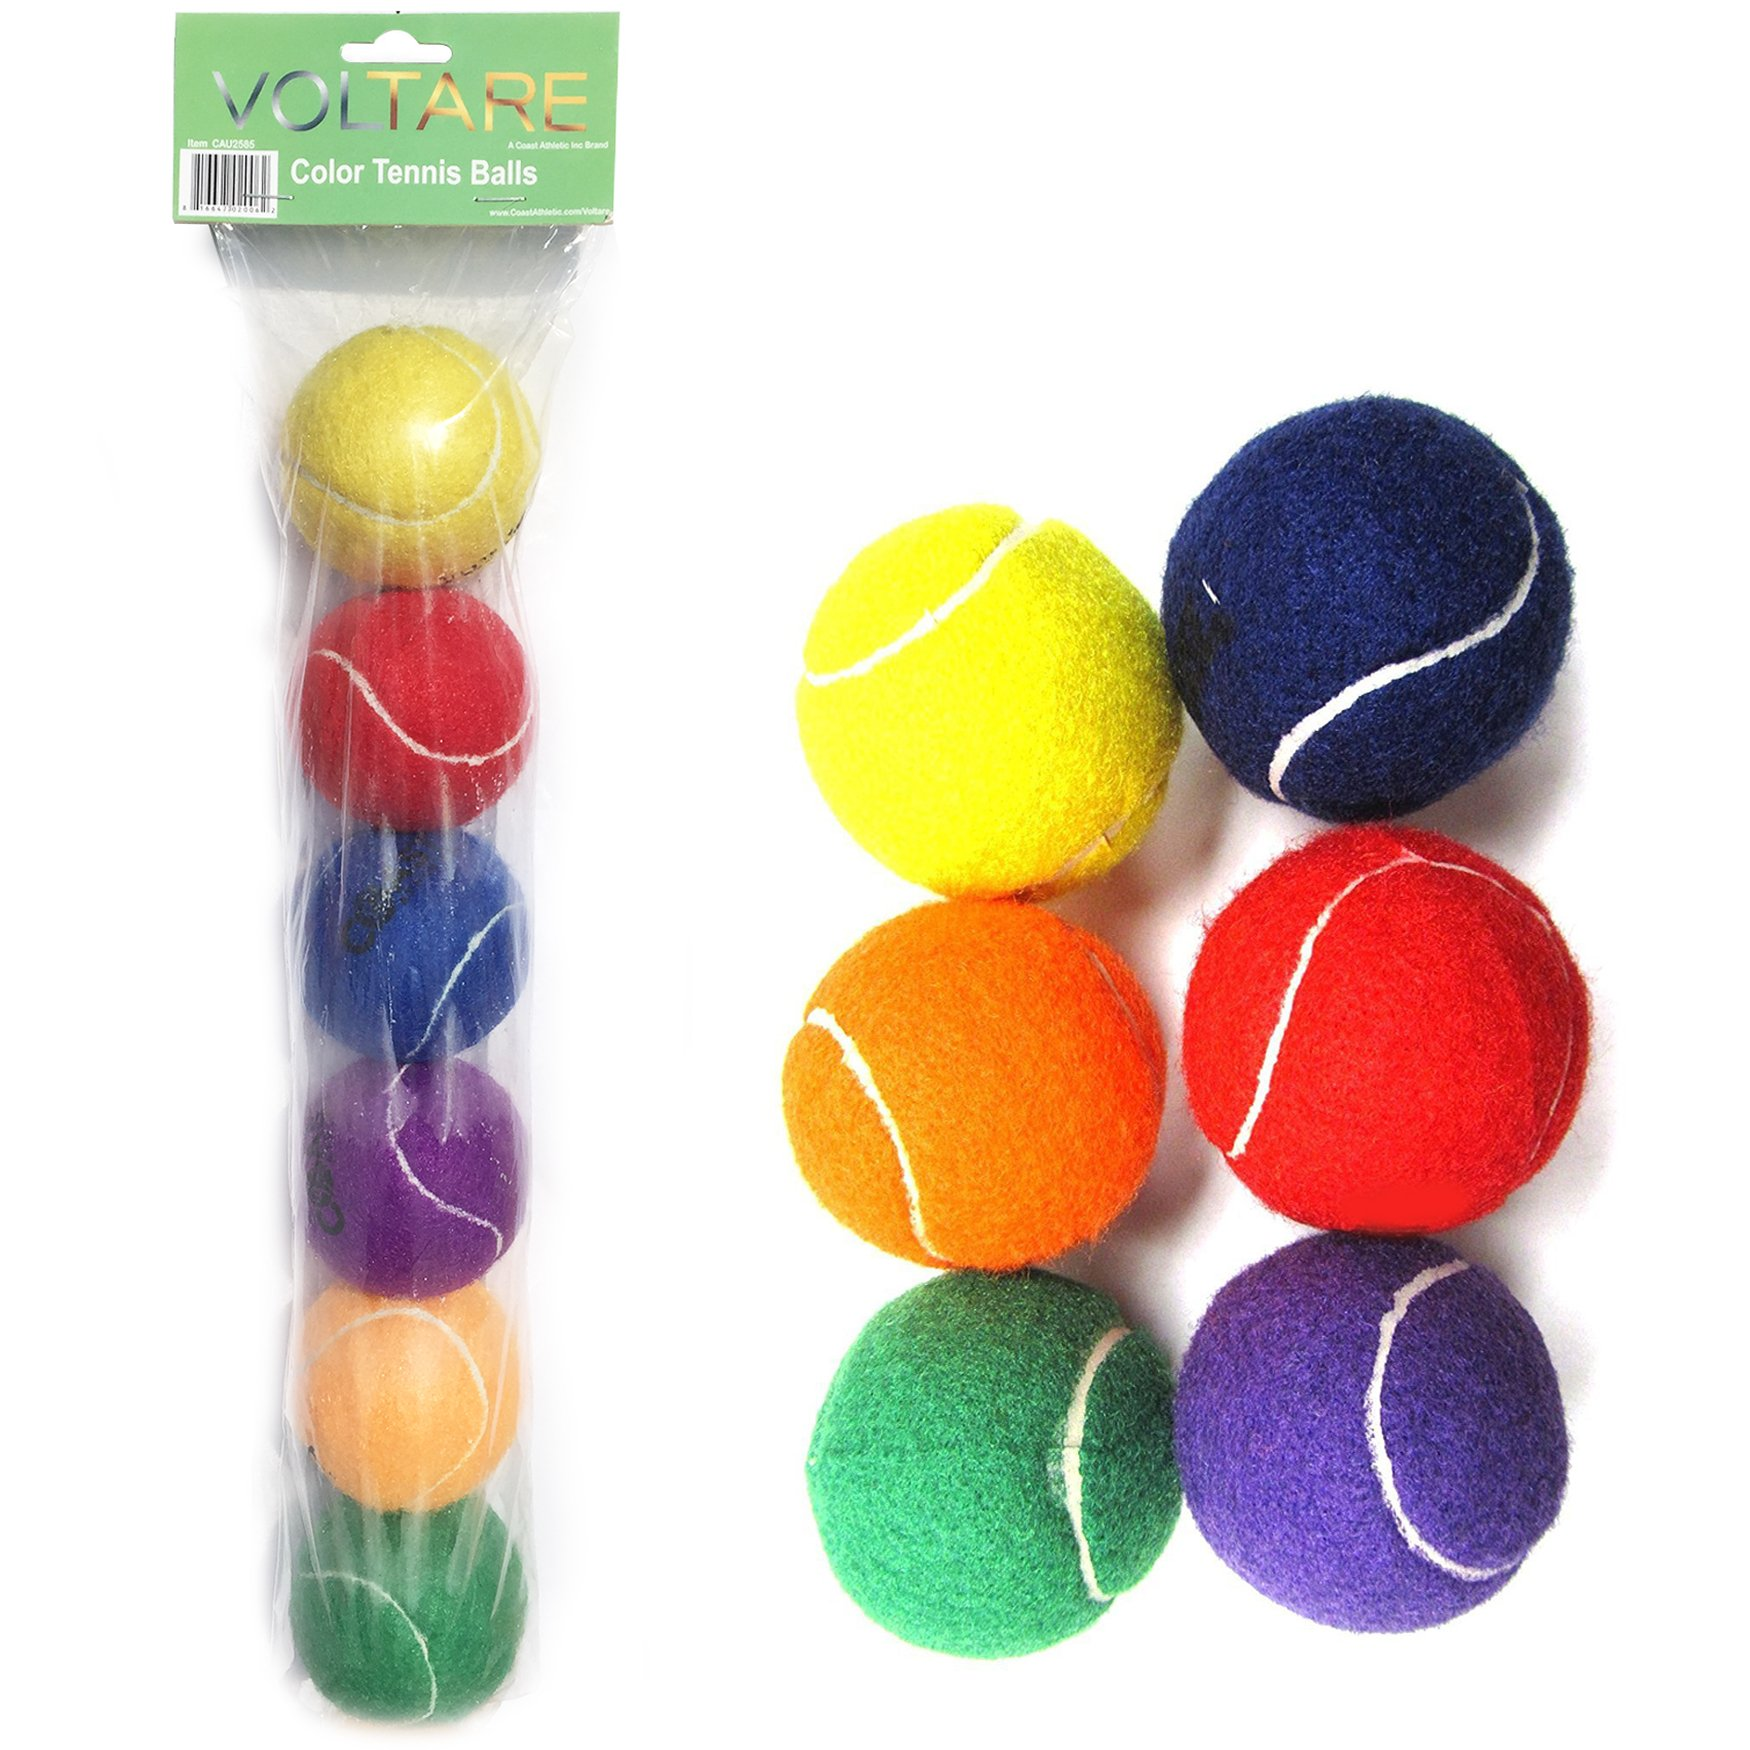 Voltare Color Tennis Ball Set | Green, Orange, Yellow, Purple, Red, Blue Tennis Balls | (6 Pack)